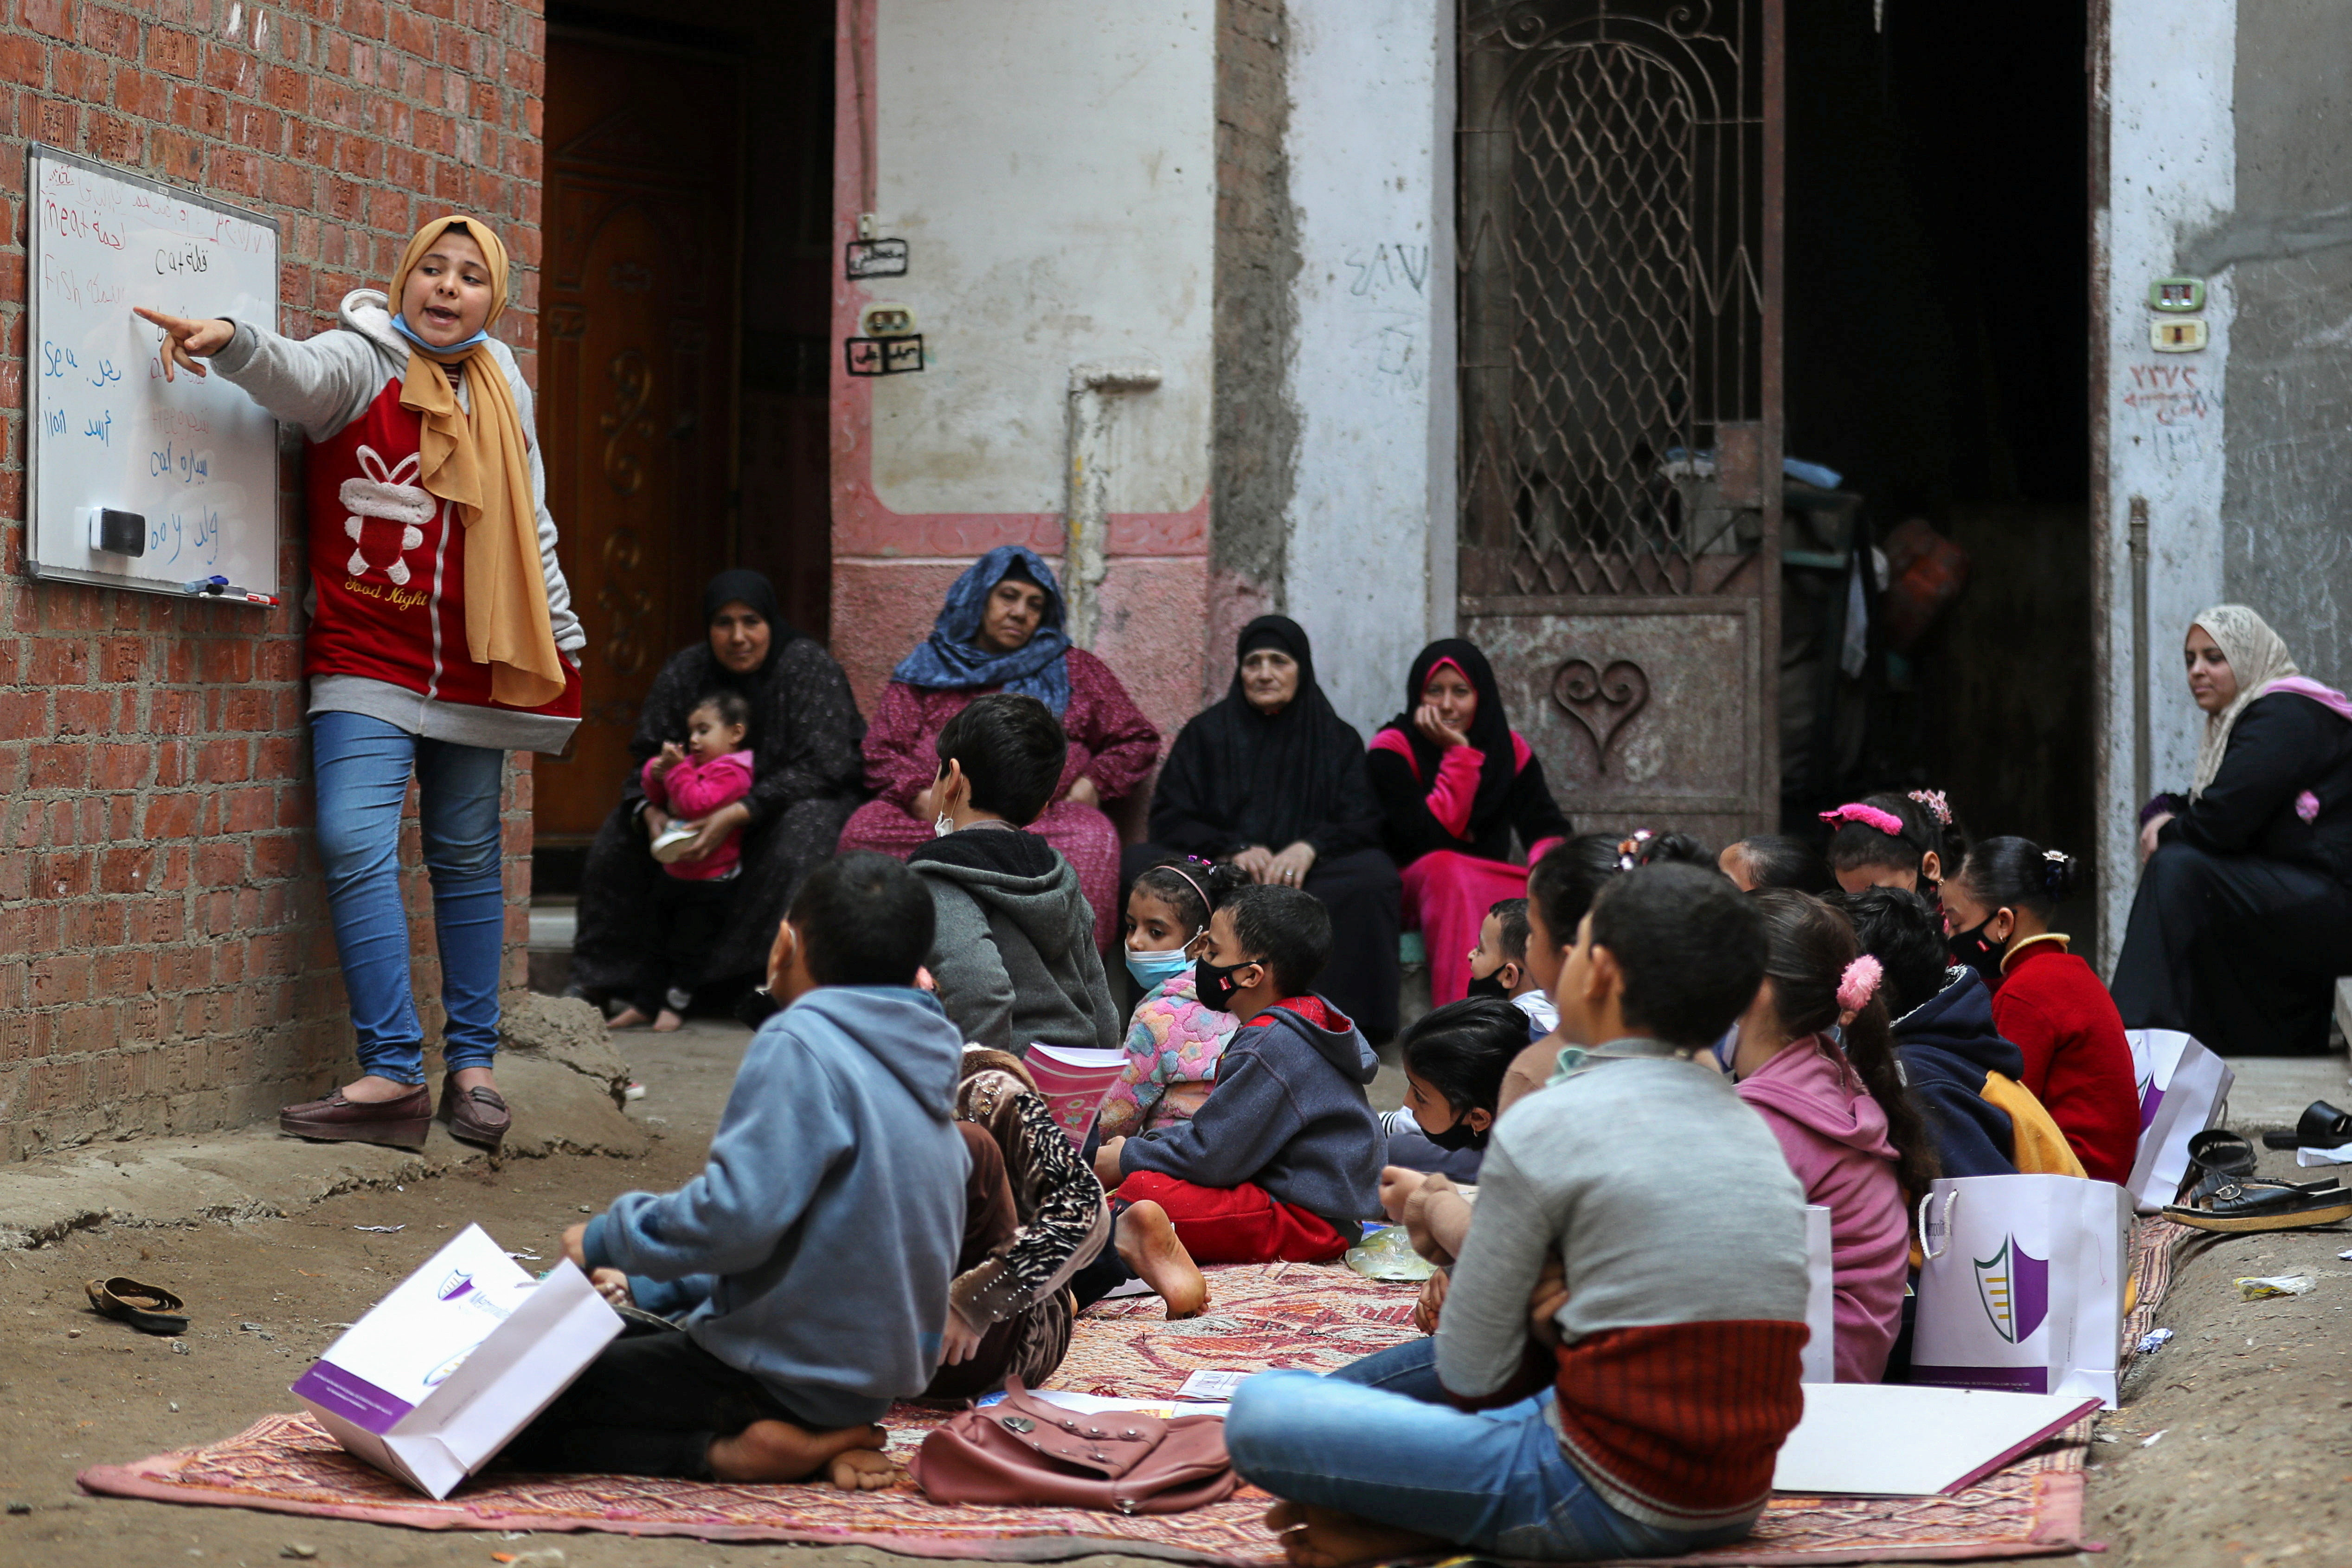 Reem El-Khouly, a 12-year-old girl, teaches children in her neighborhood as schools remain closed during the coronavirus disease (COVID-19) pandemic, at Atmida village in Dakahlia province, Egypt February 7, 2021. Picture taken February 7, 2021.